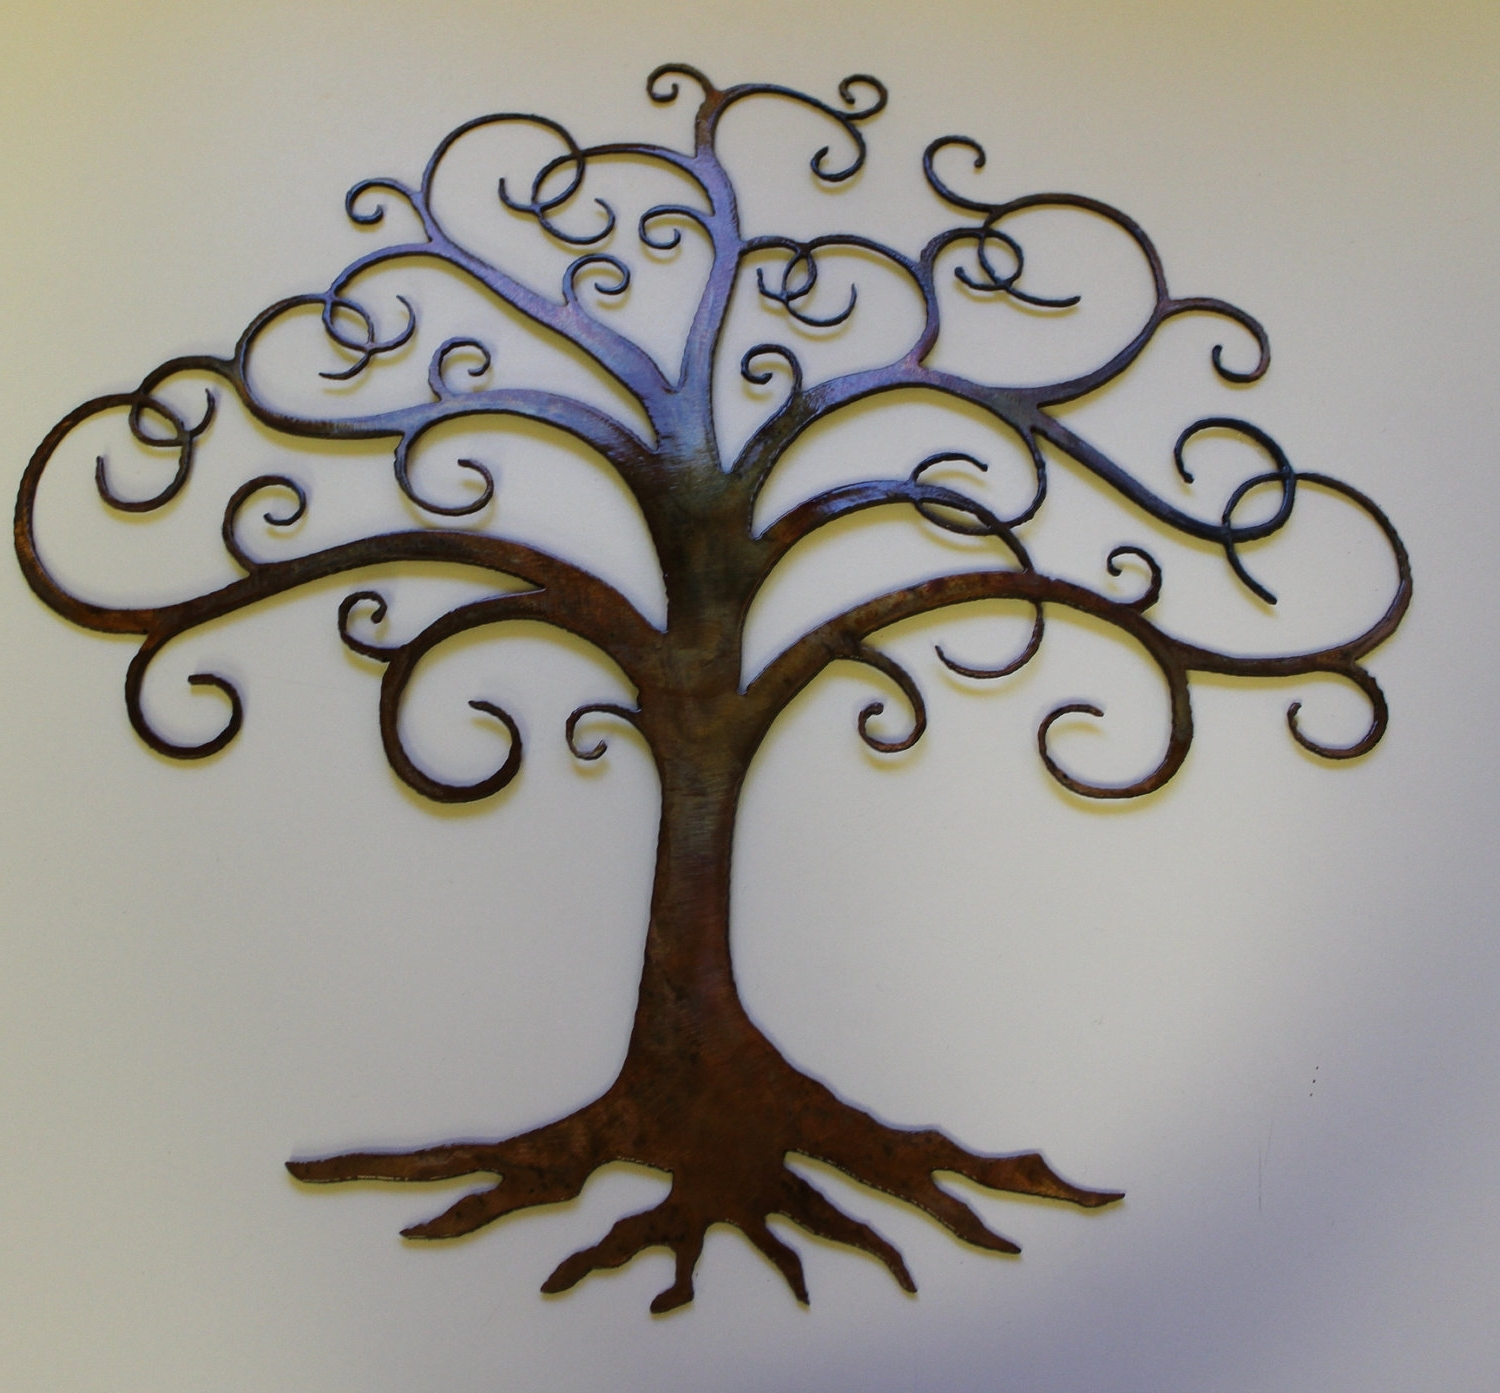 Most Current Iron Tree Wall Art In Black Wrought Iron Tree Wall Decor • Walls Decor (View 8 of 15)